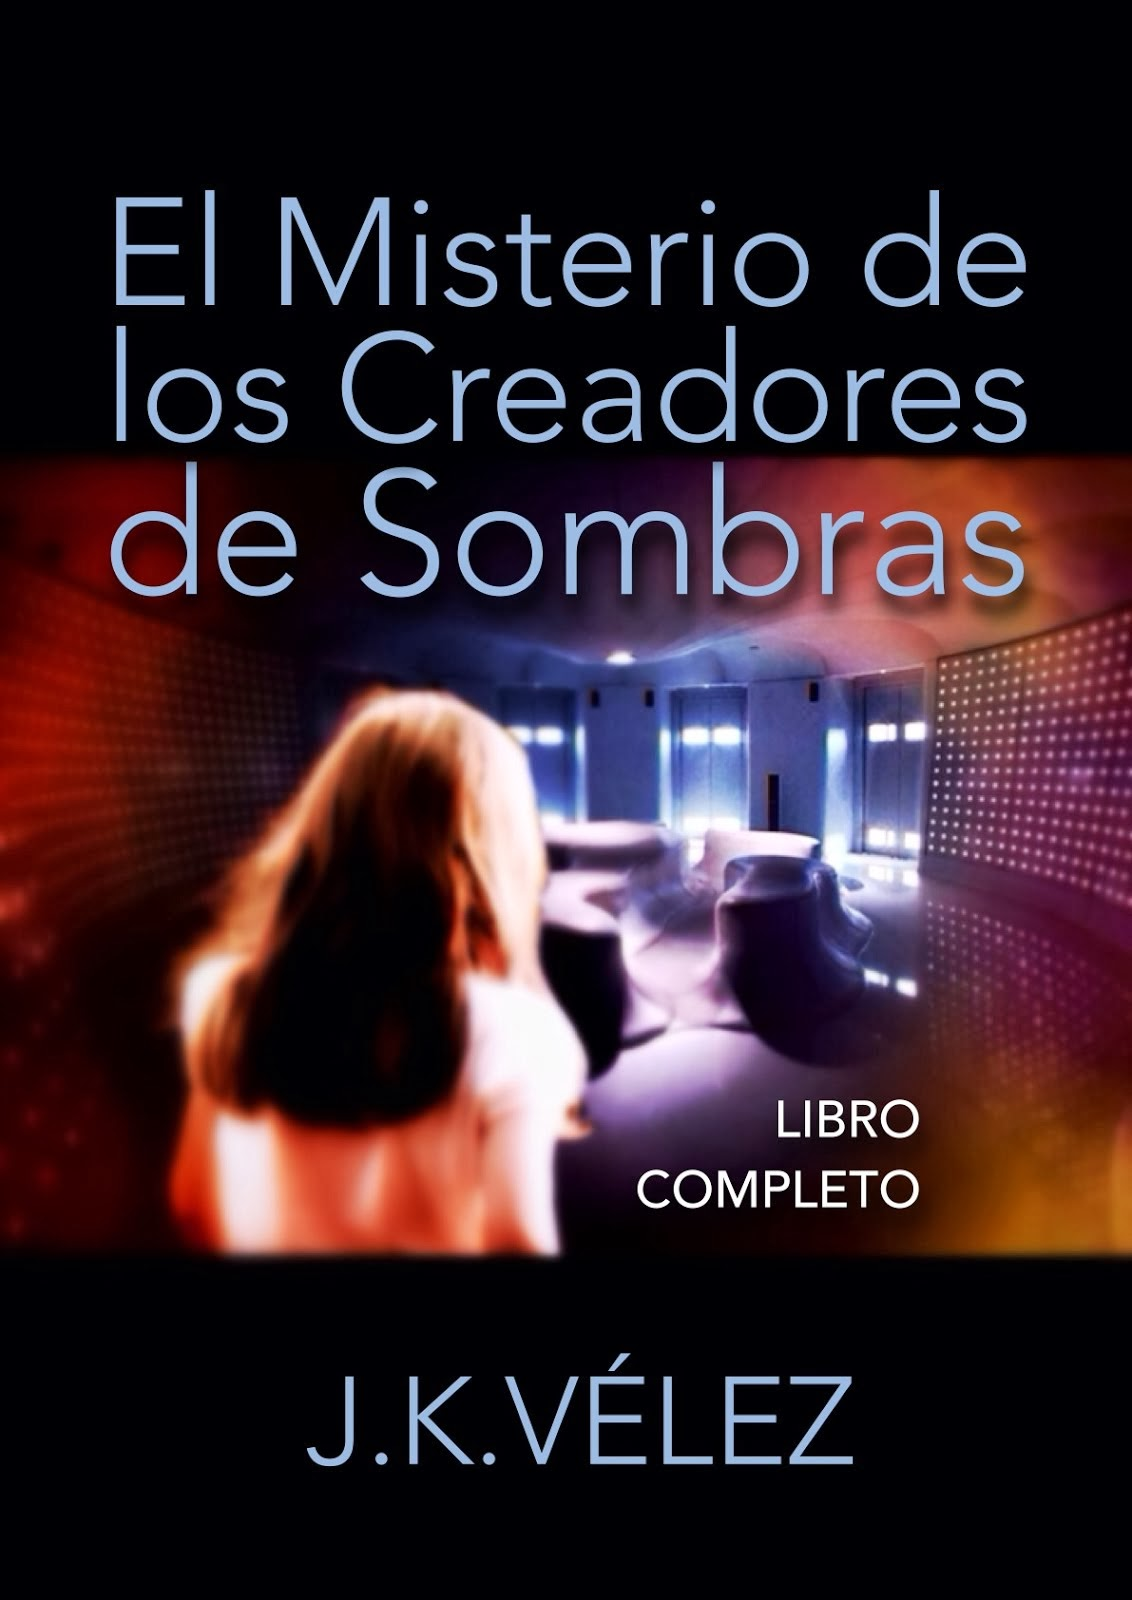 Disponible para Kindle en Amazon